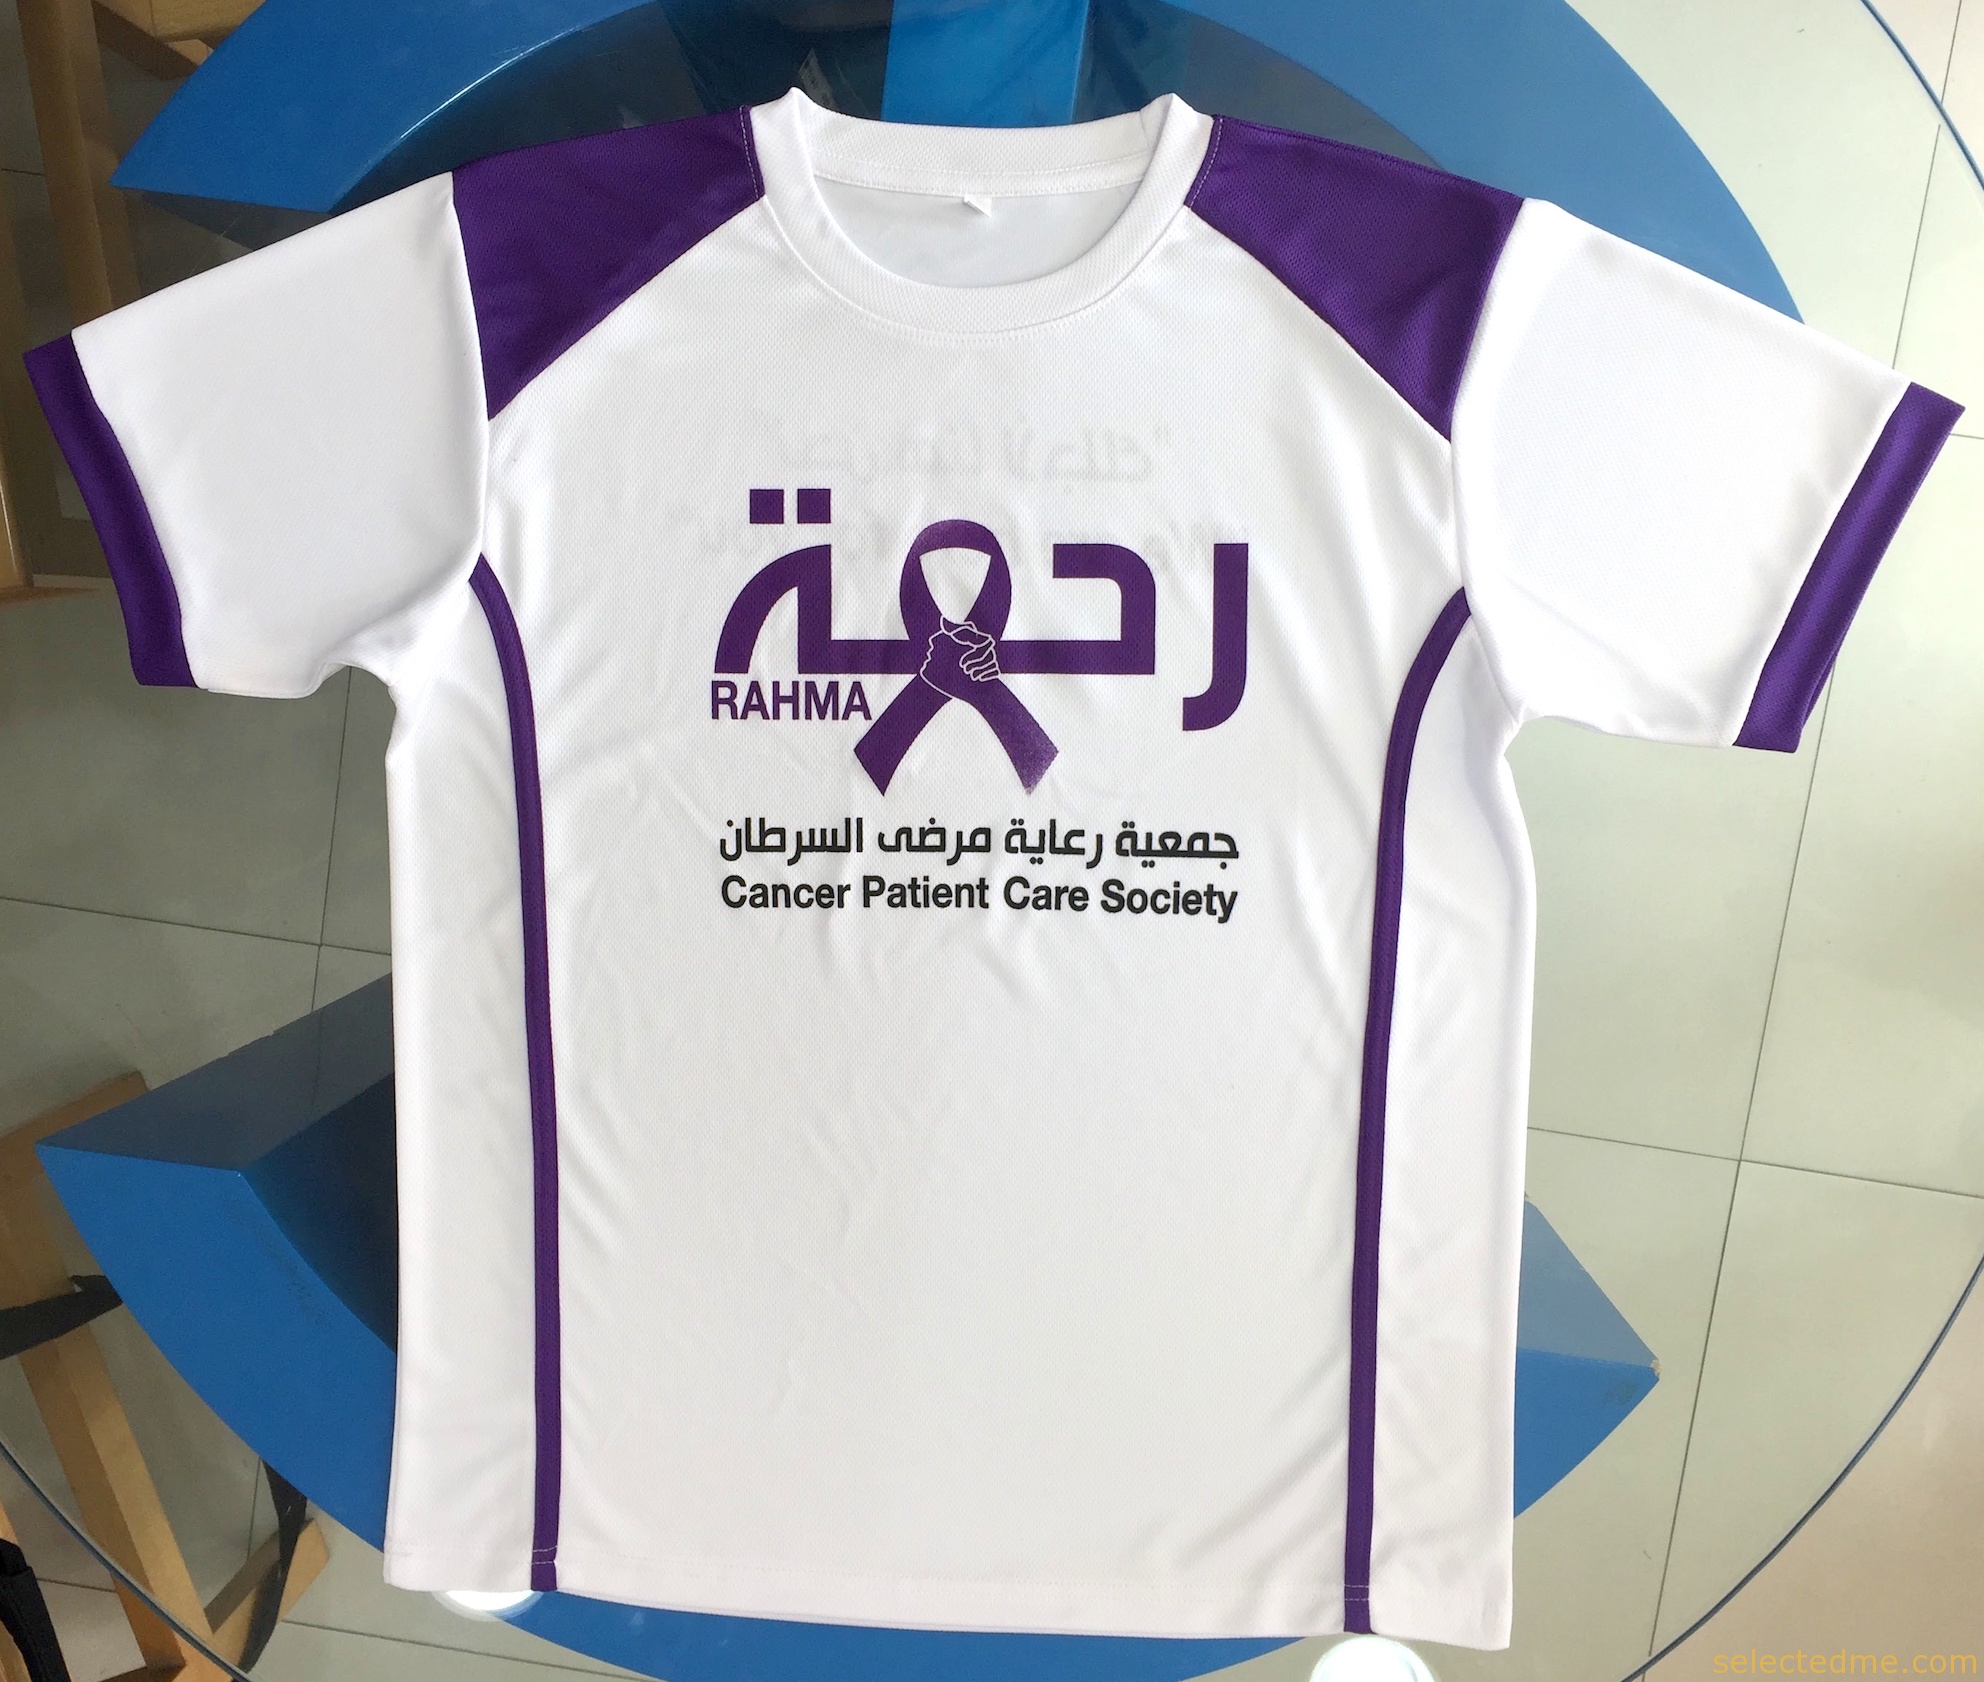 49e7c5cea Sports T-shirts in Dubai UAE with sublimation printing for wholesale